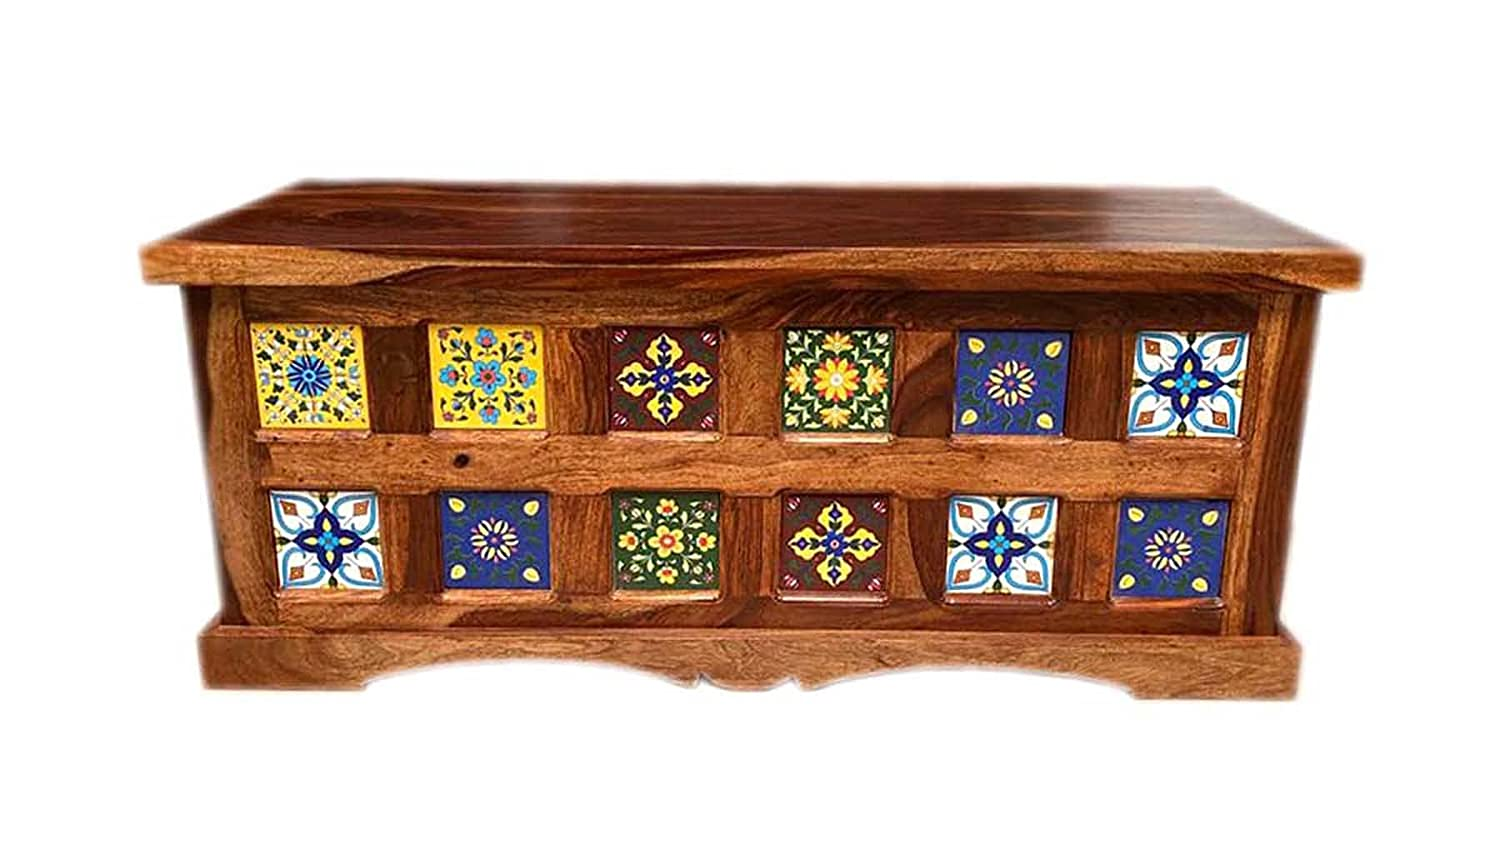 Exclusive Antique Look Coffee Table/Center Table Cum Storage Box/Blanket Storage Box/Trunk, Solid Sheesham Wood Lacquer Finish Honey Brown Size: (42 x18 x18) inch